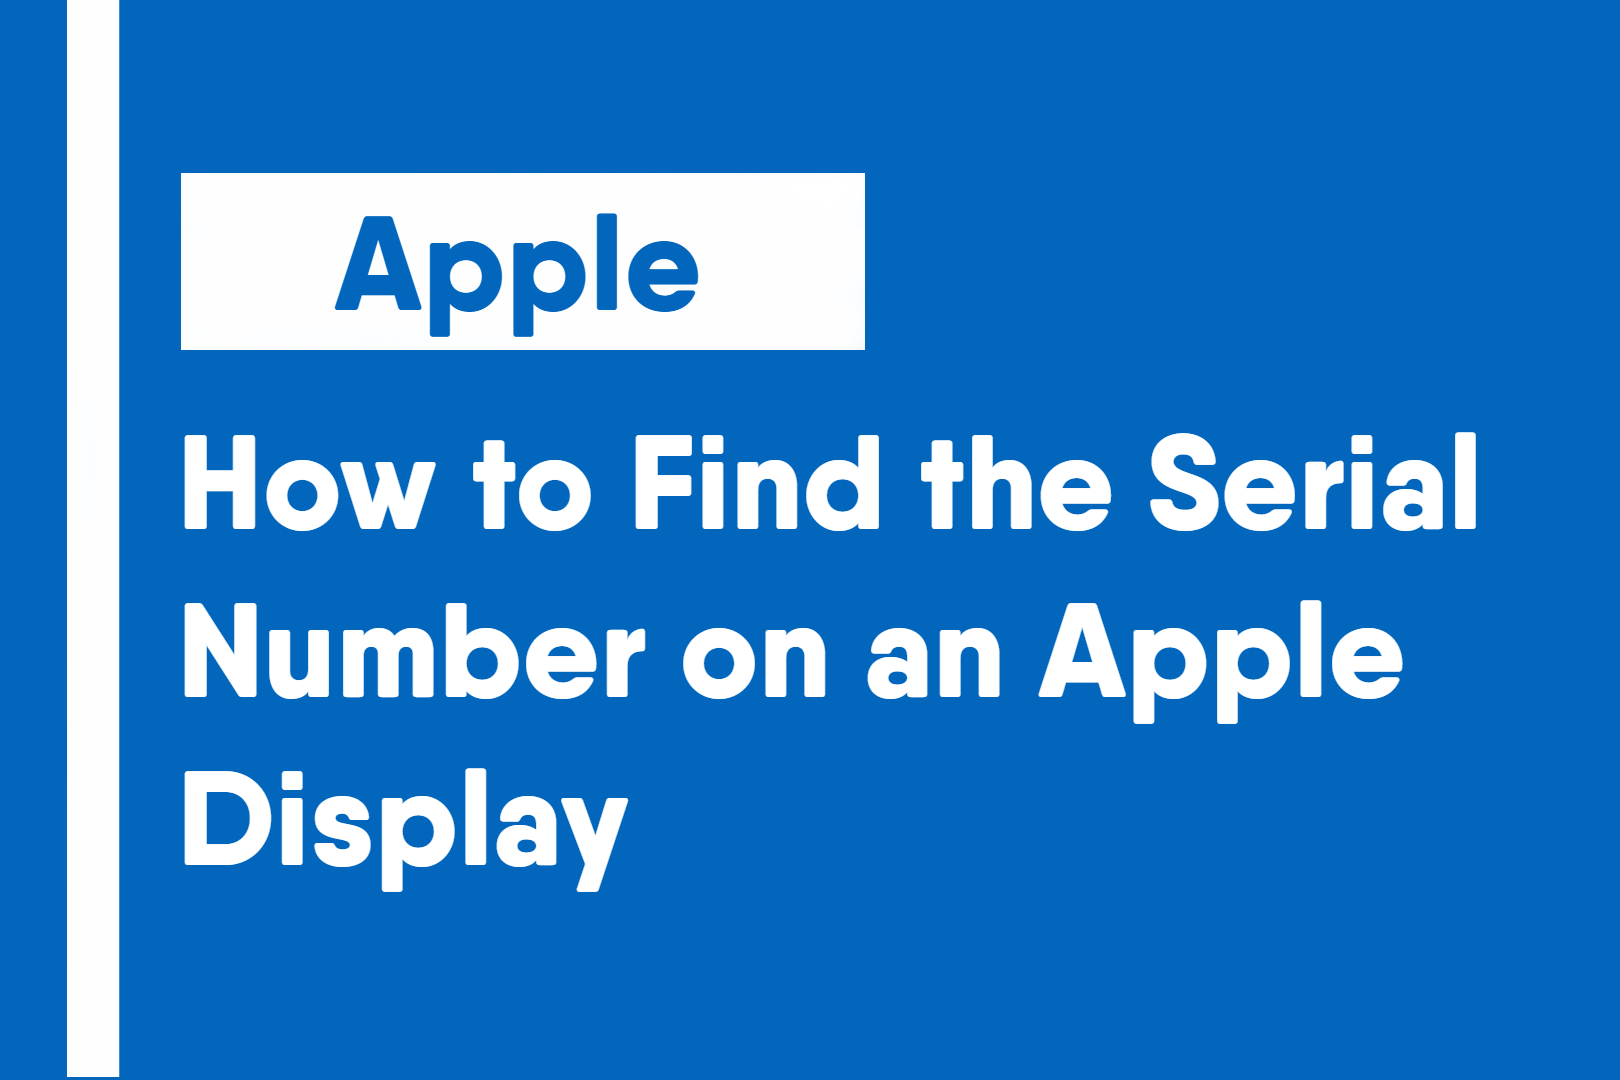 How to Find the Serial Number on an Apple Display